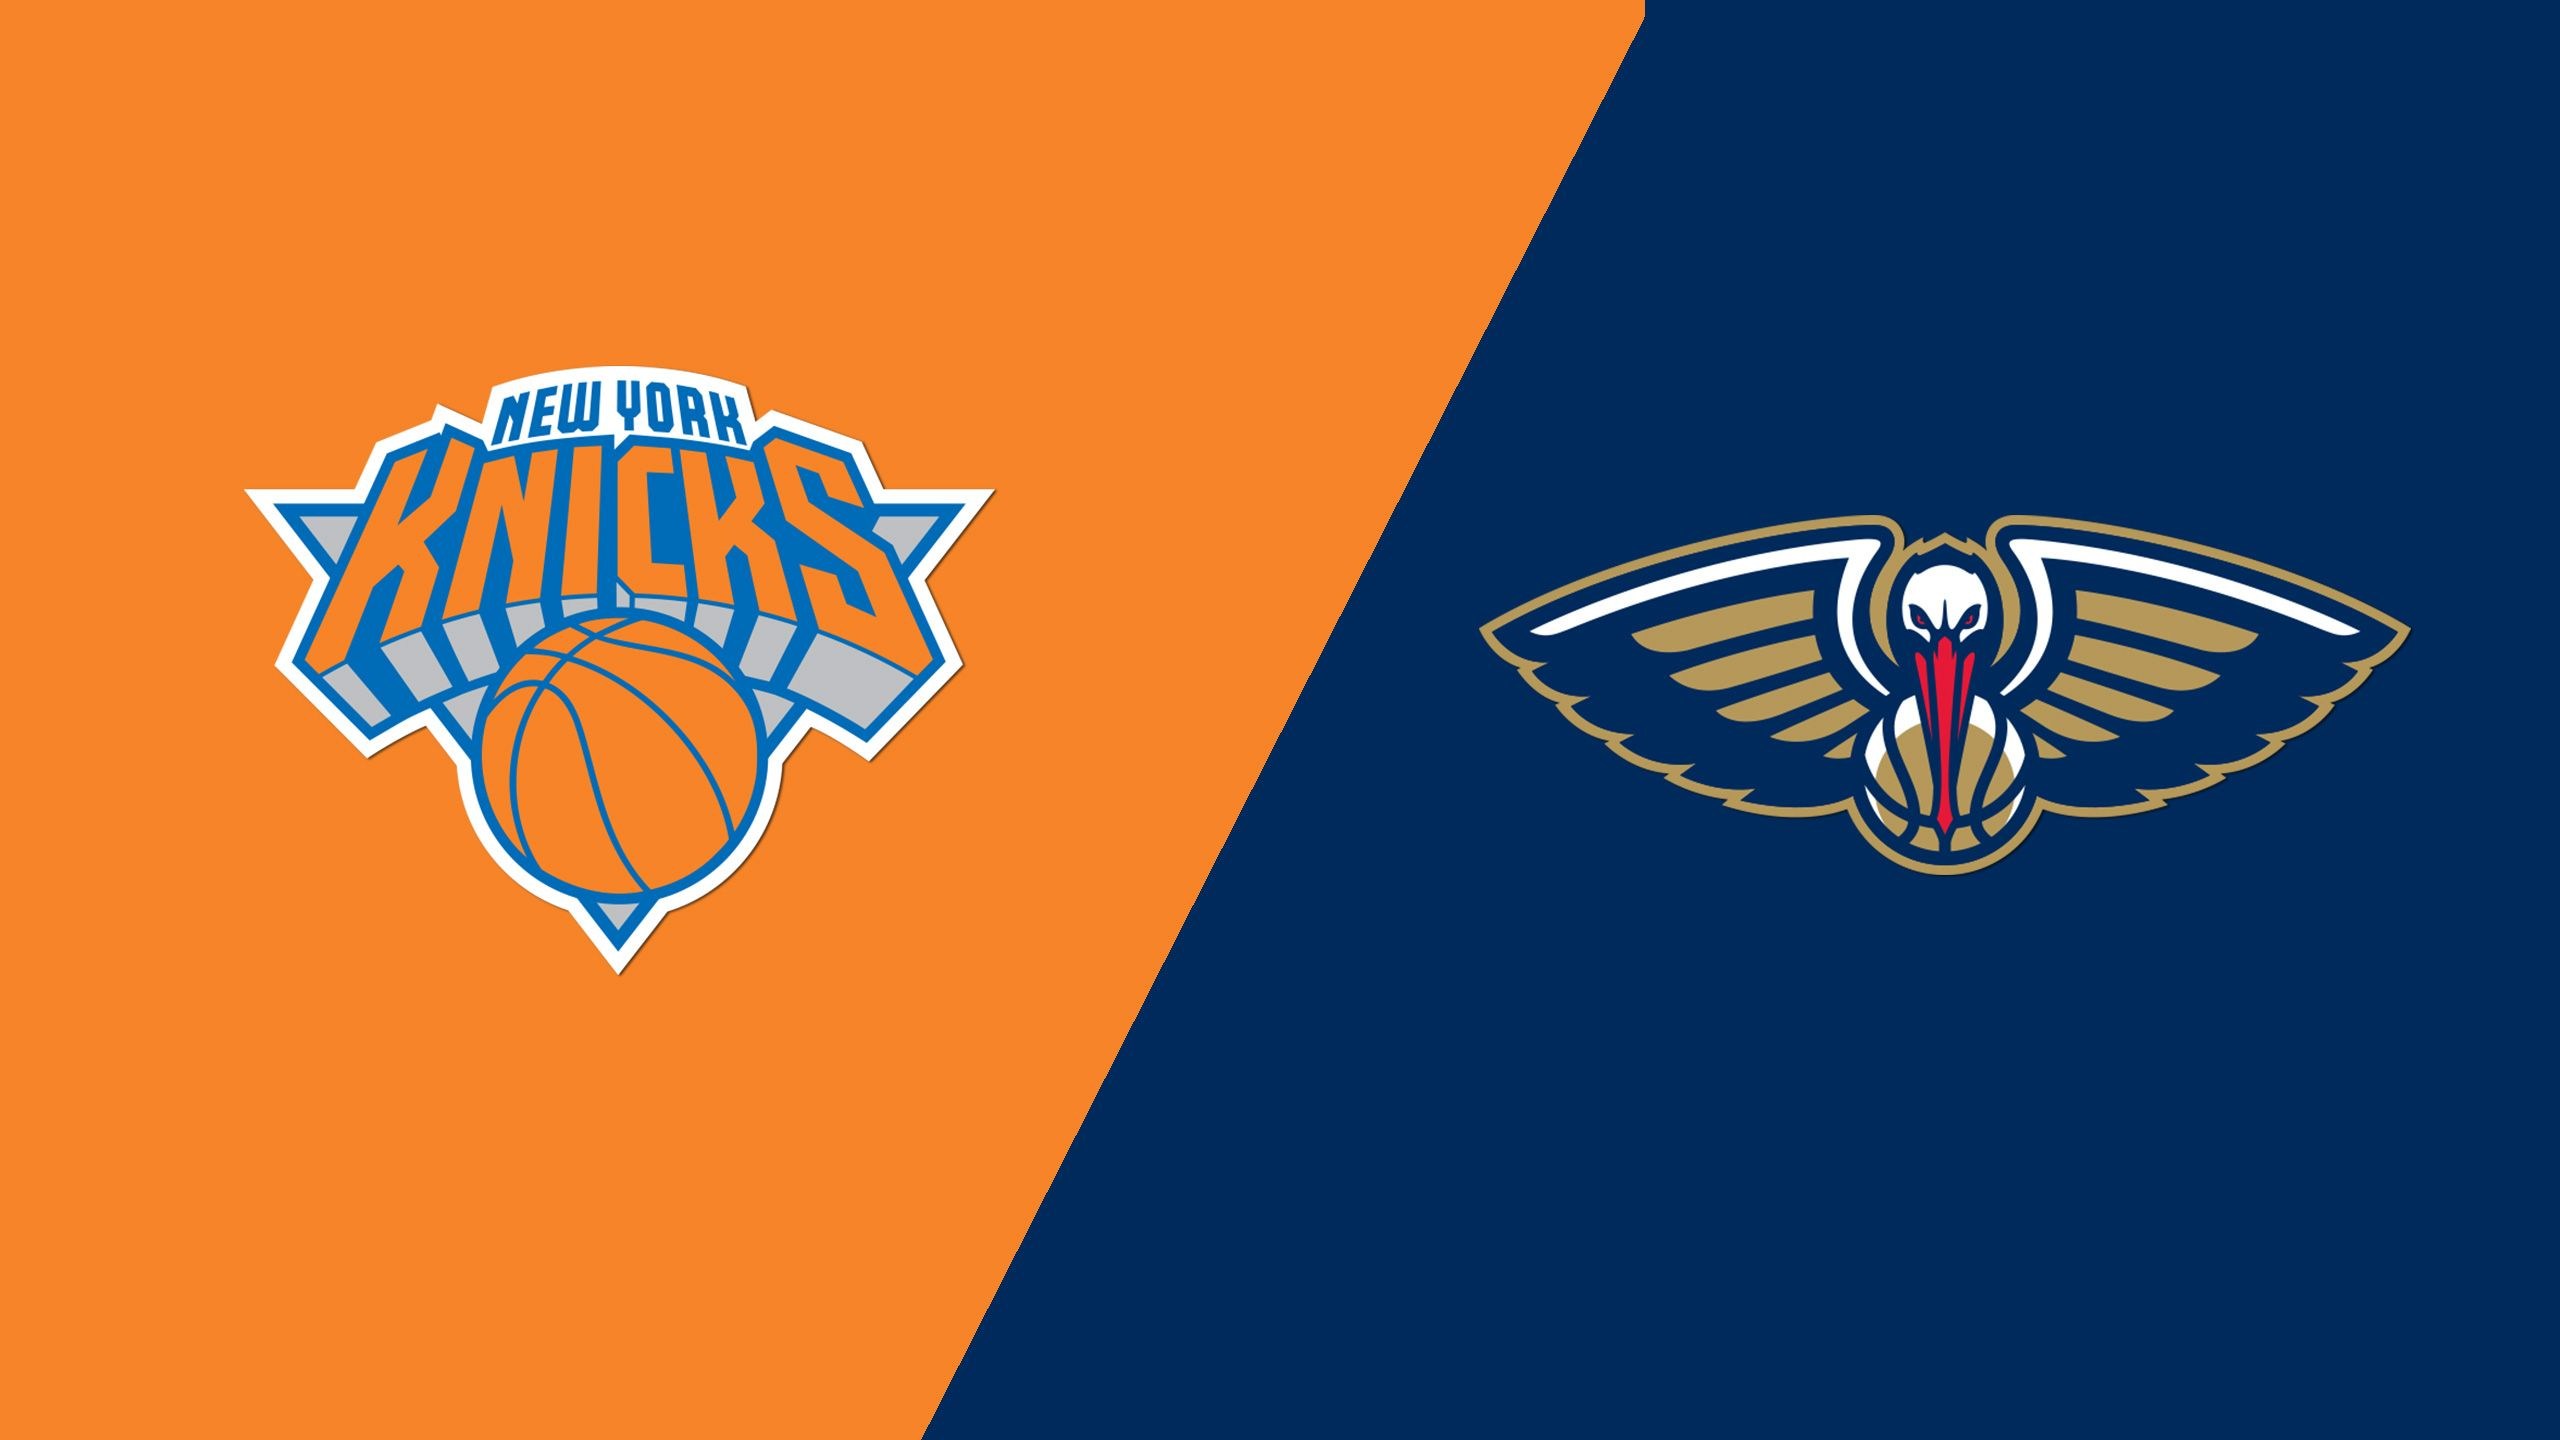 New York Knicks vs. New Orleans Pelicans (Consolation Round)